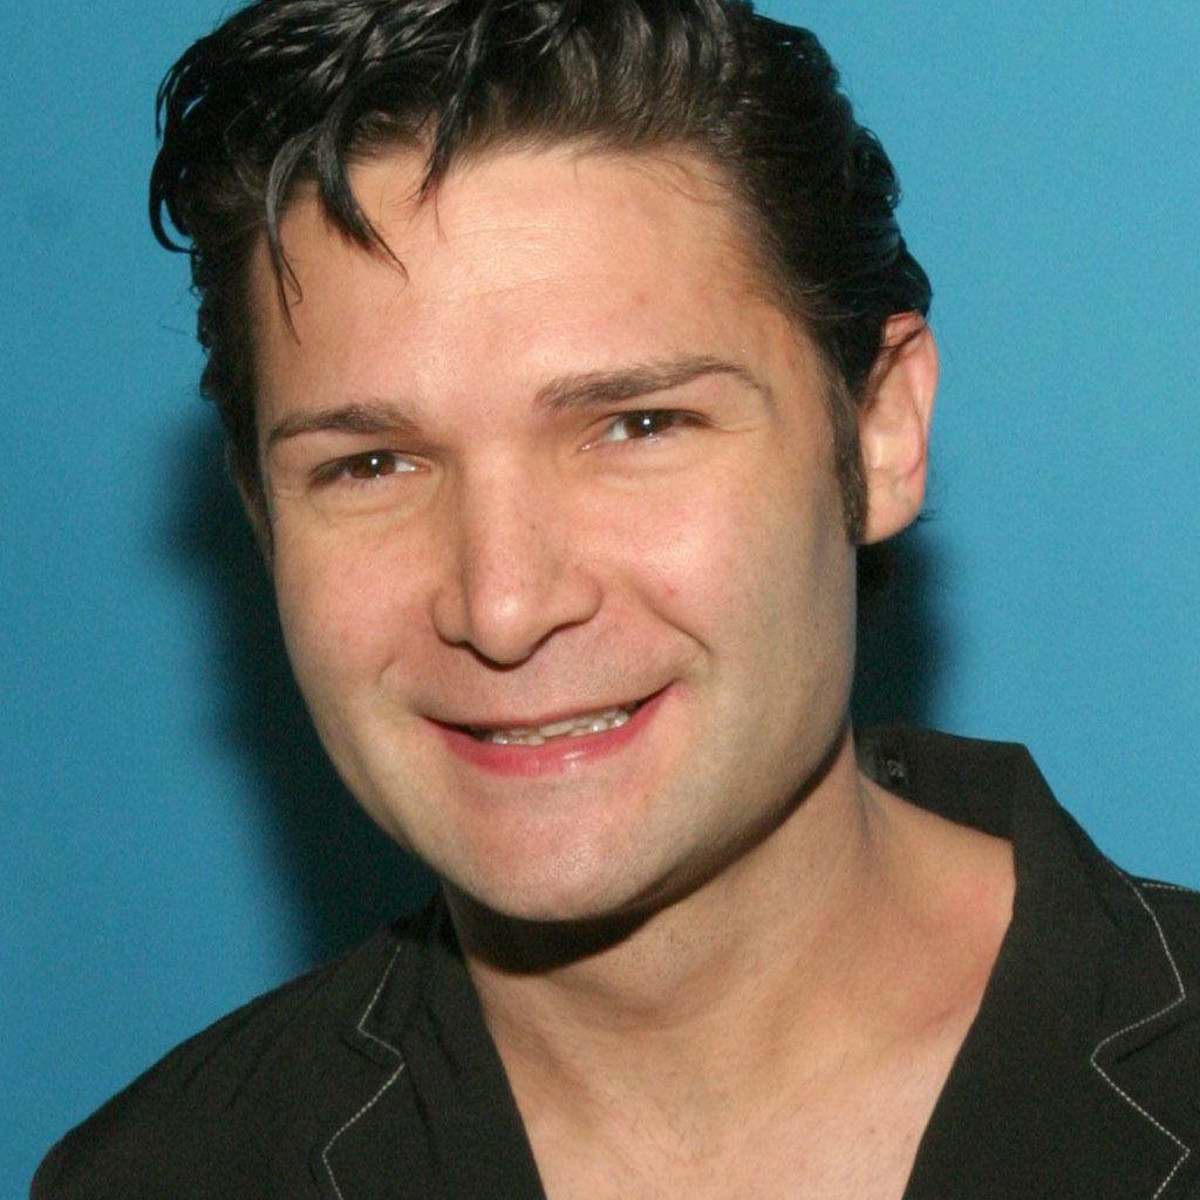 Corey Feldman's Hollywood Paedophilia Revelations - a Missed Opportunity?